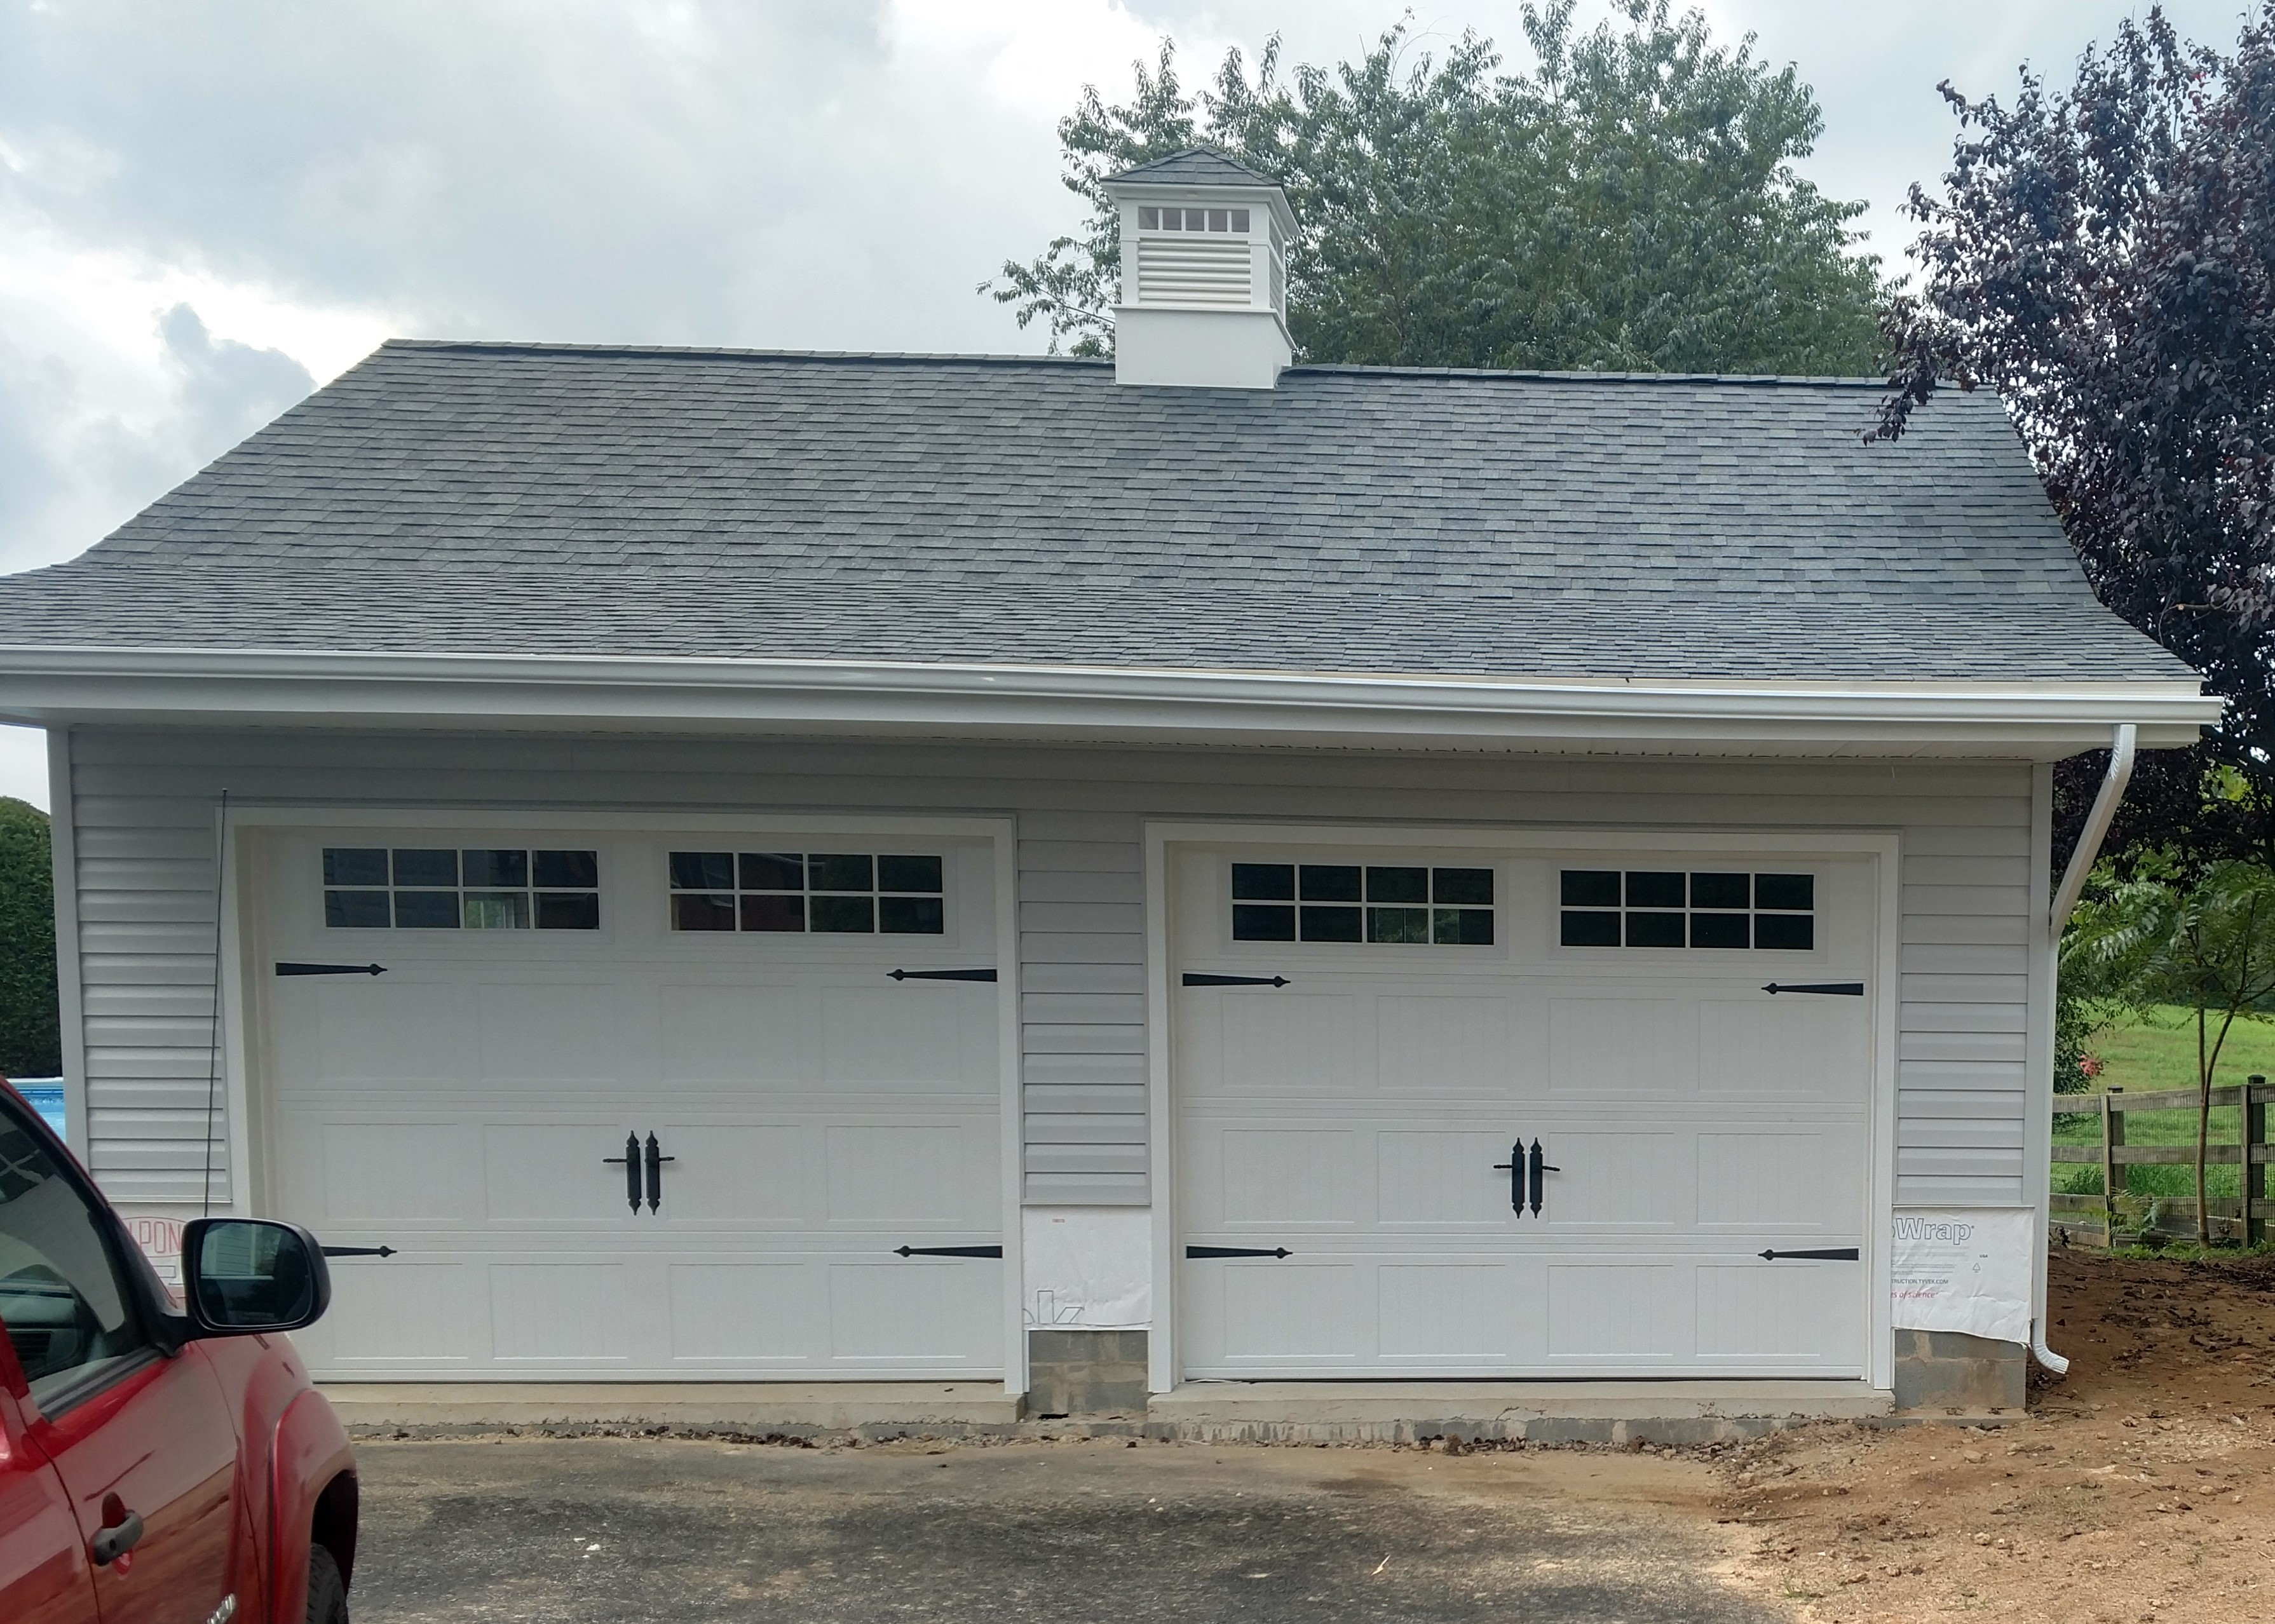 24x24 7 12 extended truss front overhang Two Car Garages